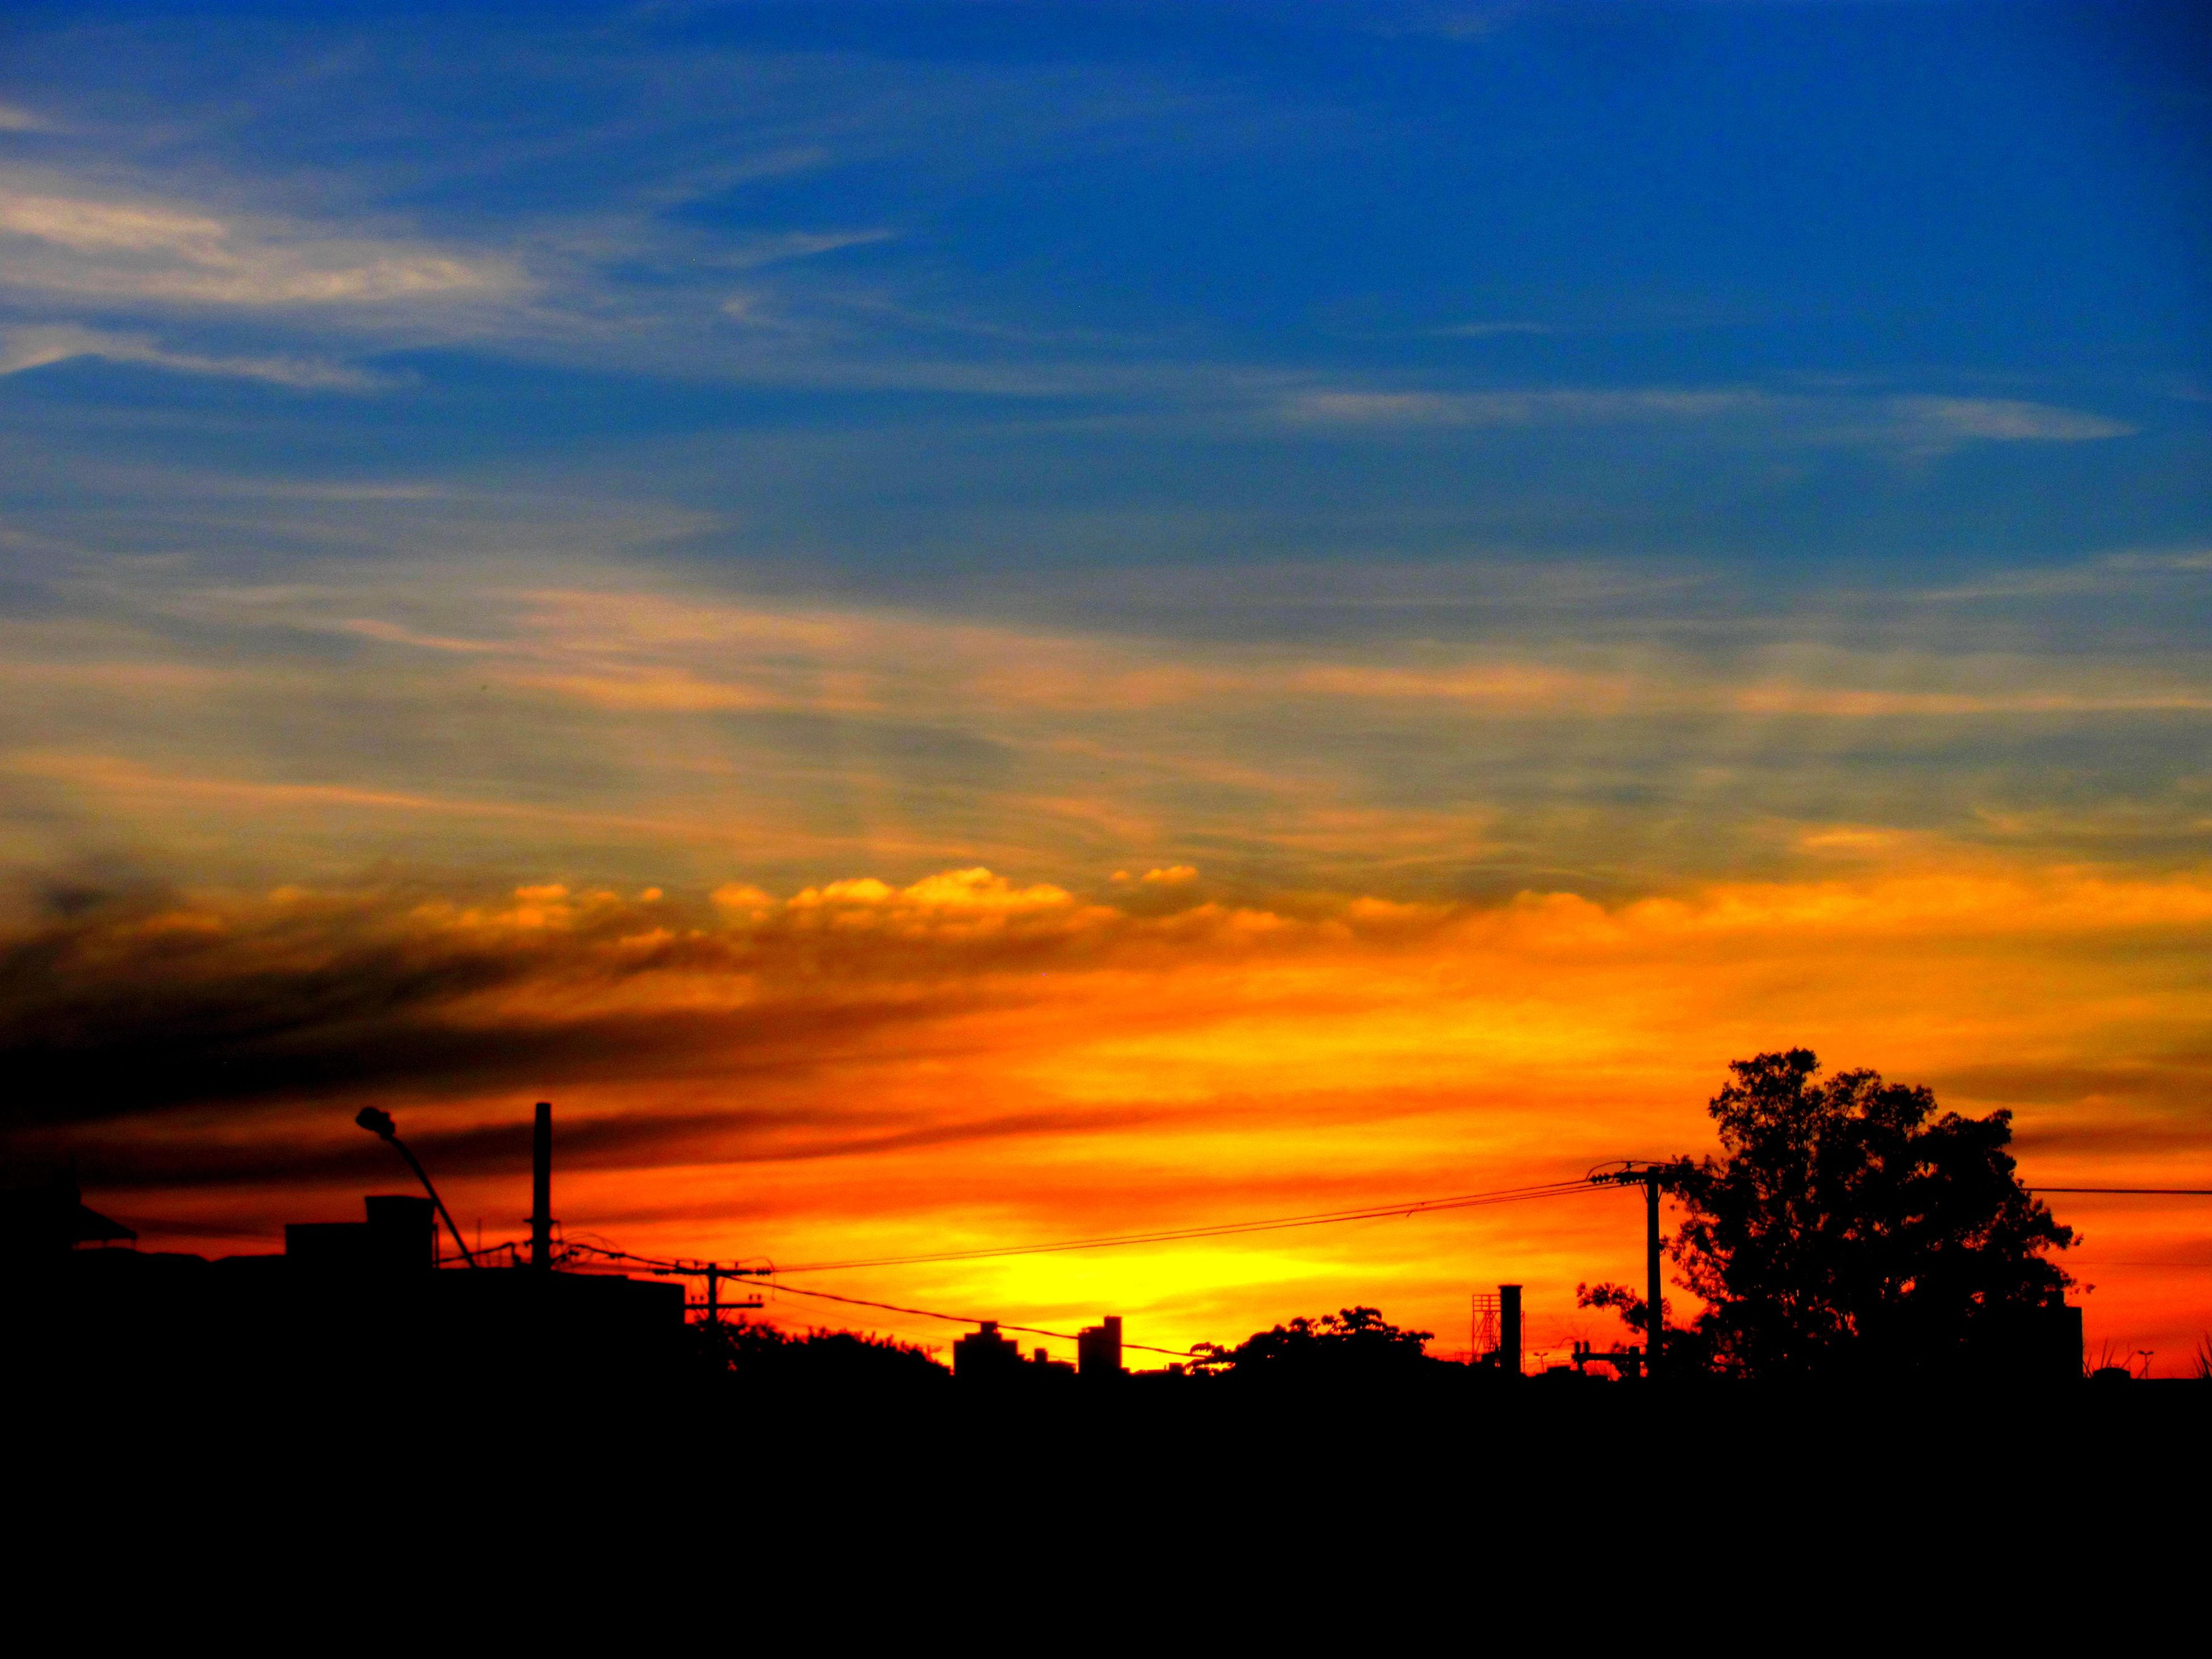 sunset, silhouette, sky, orange color, cloud - sky, architecture, built structure, nature, building exterior, tree, outdoors, no people, beauty in nature, scenics, day